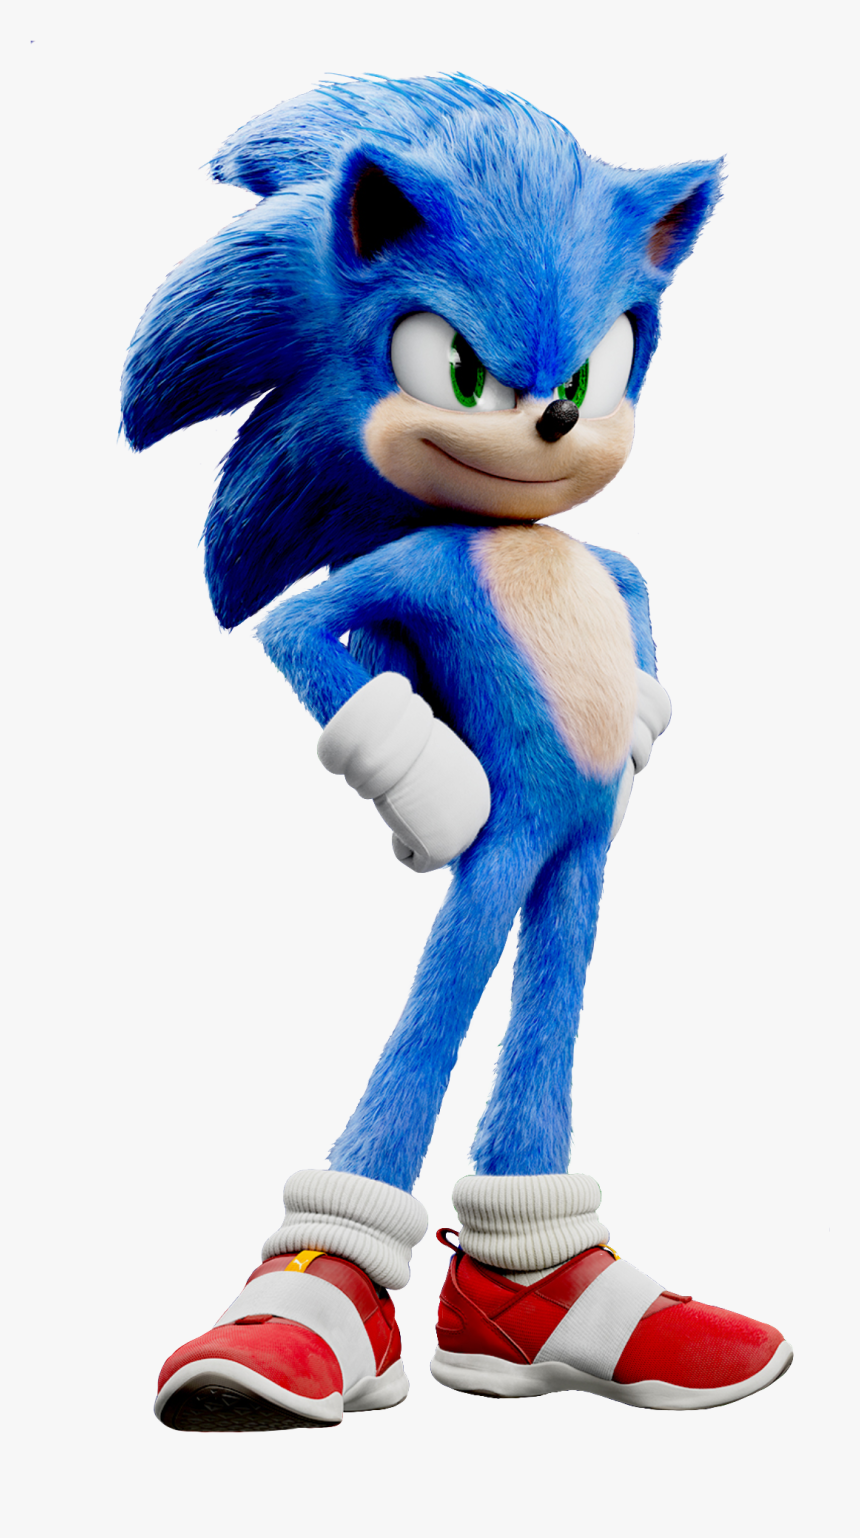 Sonic The Hedgehog Movie 2020 Hd Png Download Transparent Png